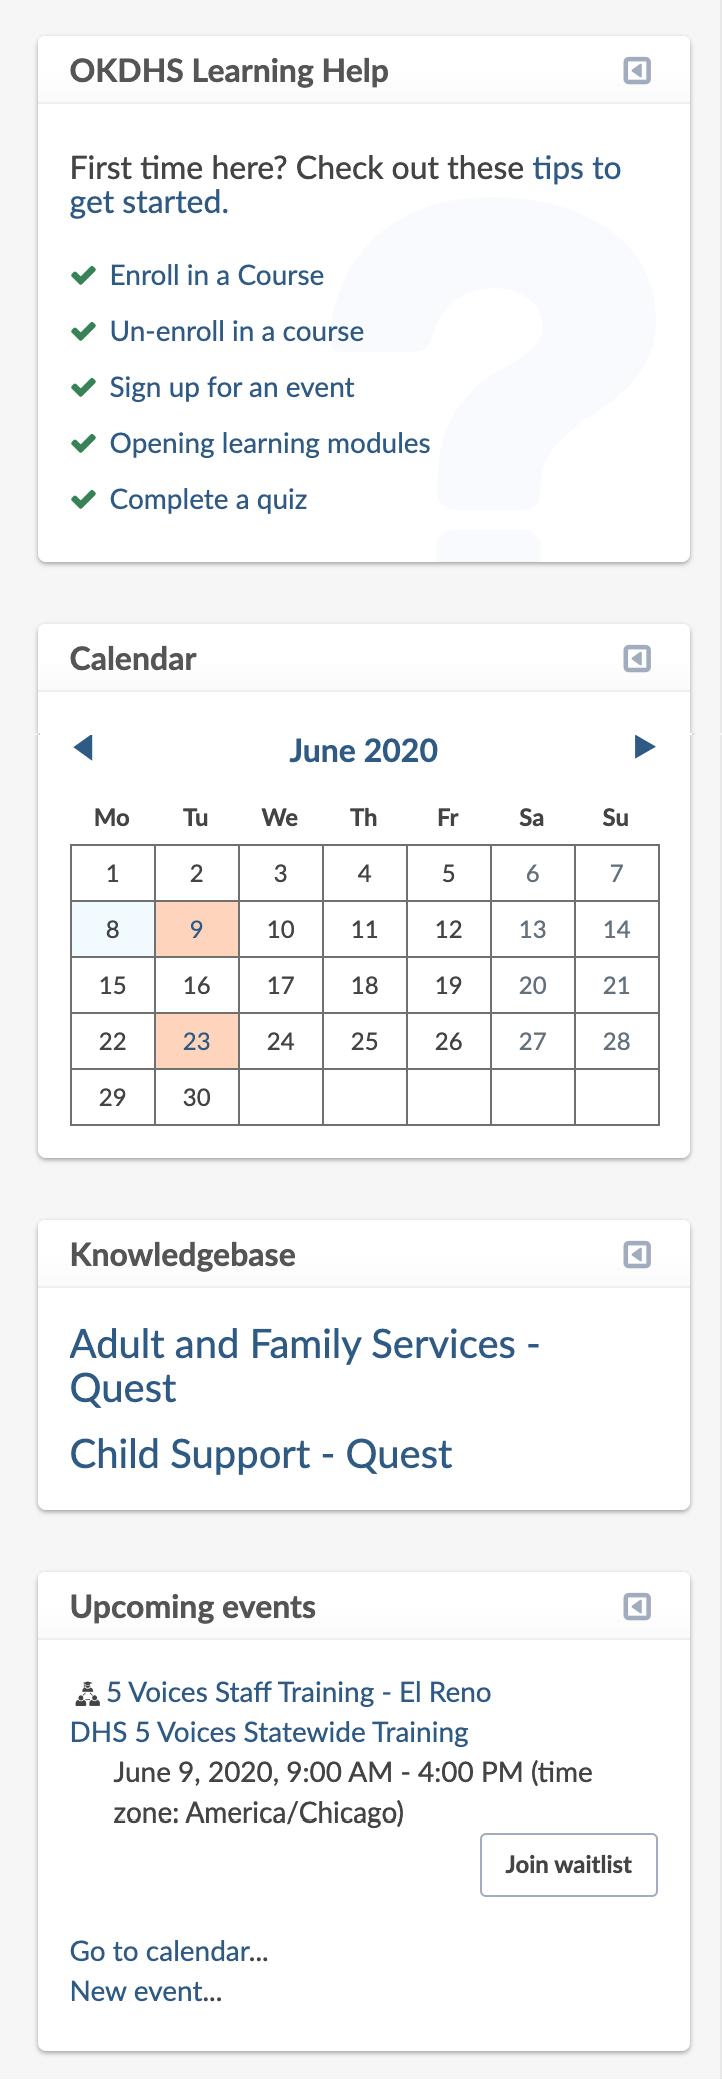 "Right-hand dashboard panel: OKDHS Learning Help block (including links to help articles), Calendar block (including several dates highlighted), Knowledgebase block (including links to Quest sites), and Upcoming events block, including an event with ""Join waitlist"" button."